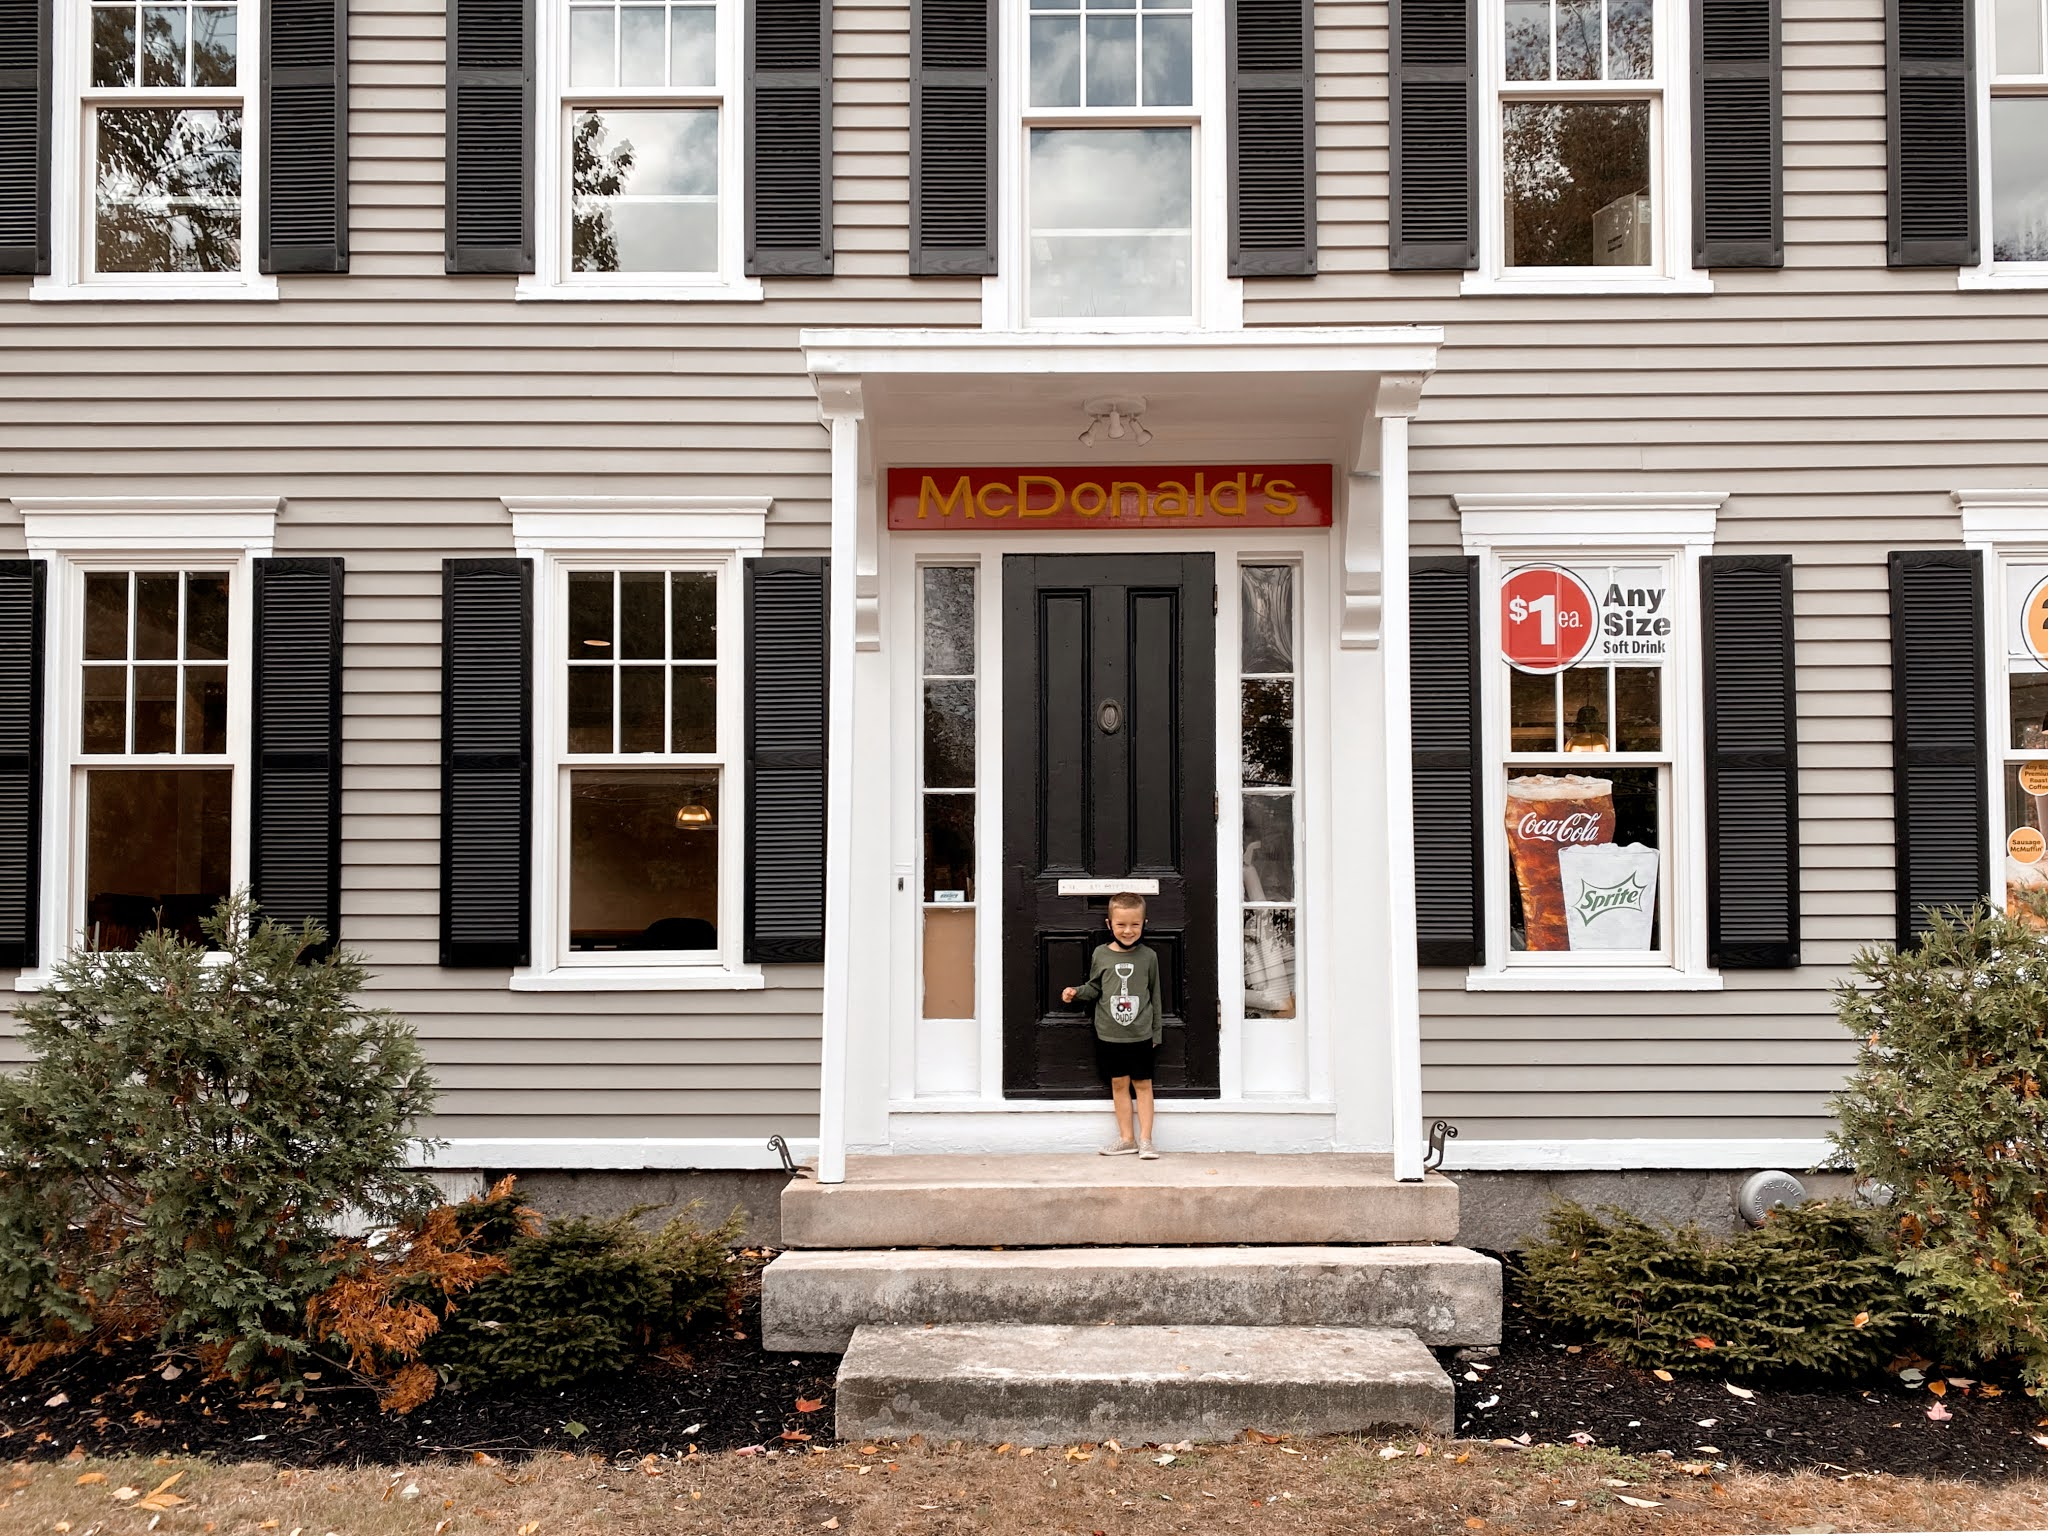 McDonalds in a 150-year old mansion in Freeport, ME | biblio-style.com